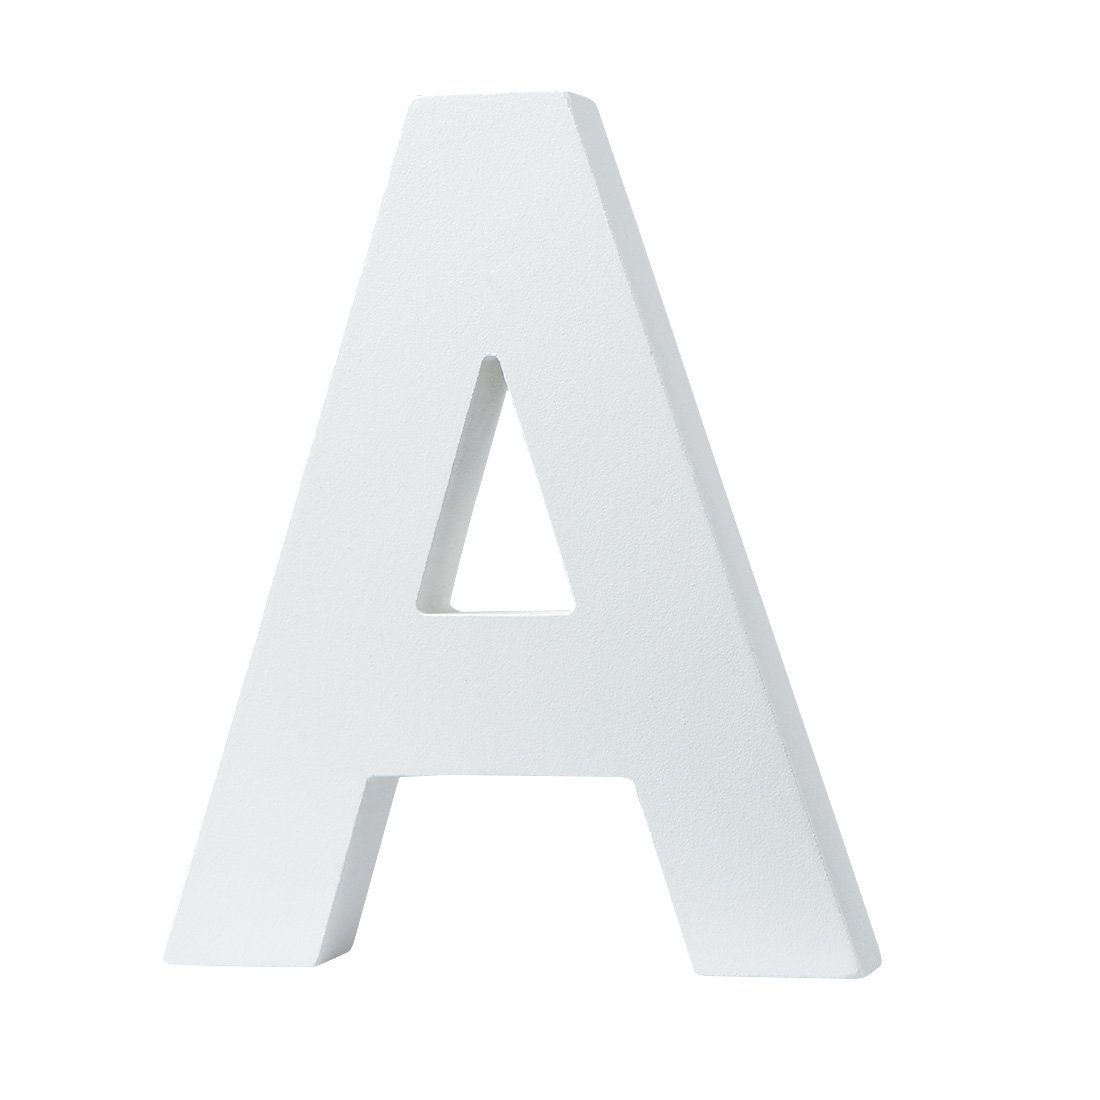 5.9(L)*4.9(H)*0.8(W)/15 * 12.5 * 2cm Large Wall Letters Marquee Alphabet G Wood Wooden Number DIY Block Words Sign Hanging Decor Letter for Home Bedroom Office Wedding Party Decor White Zebery Zebery001